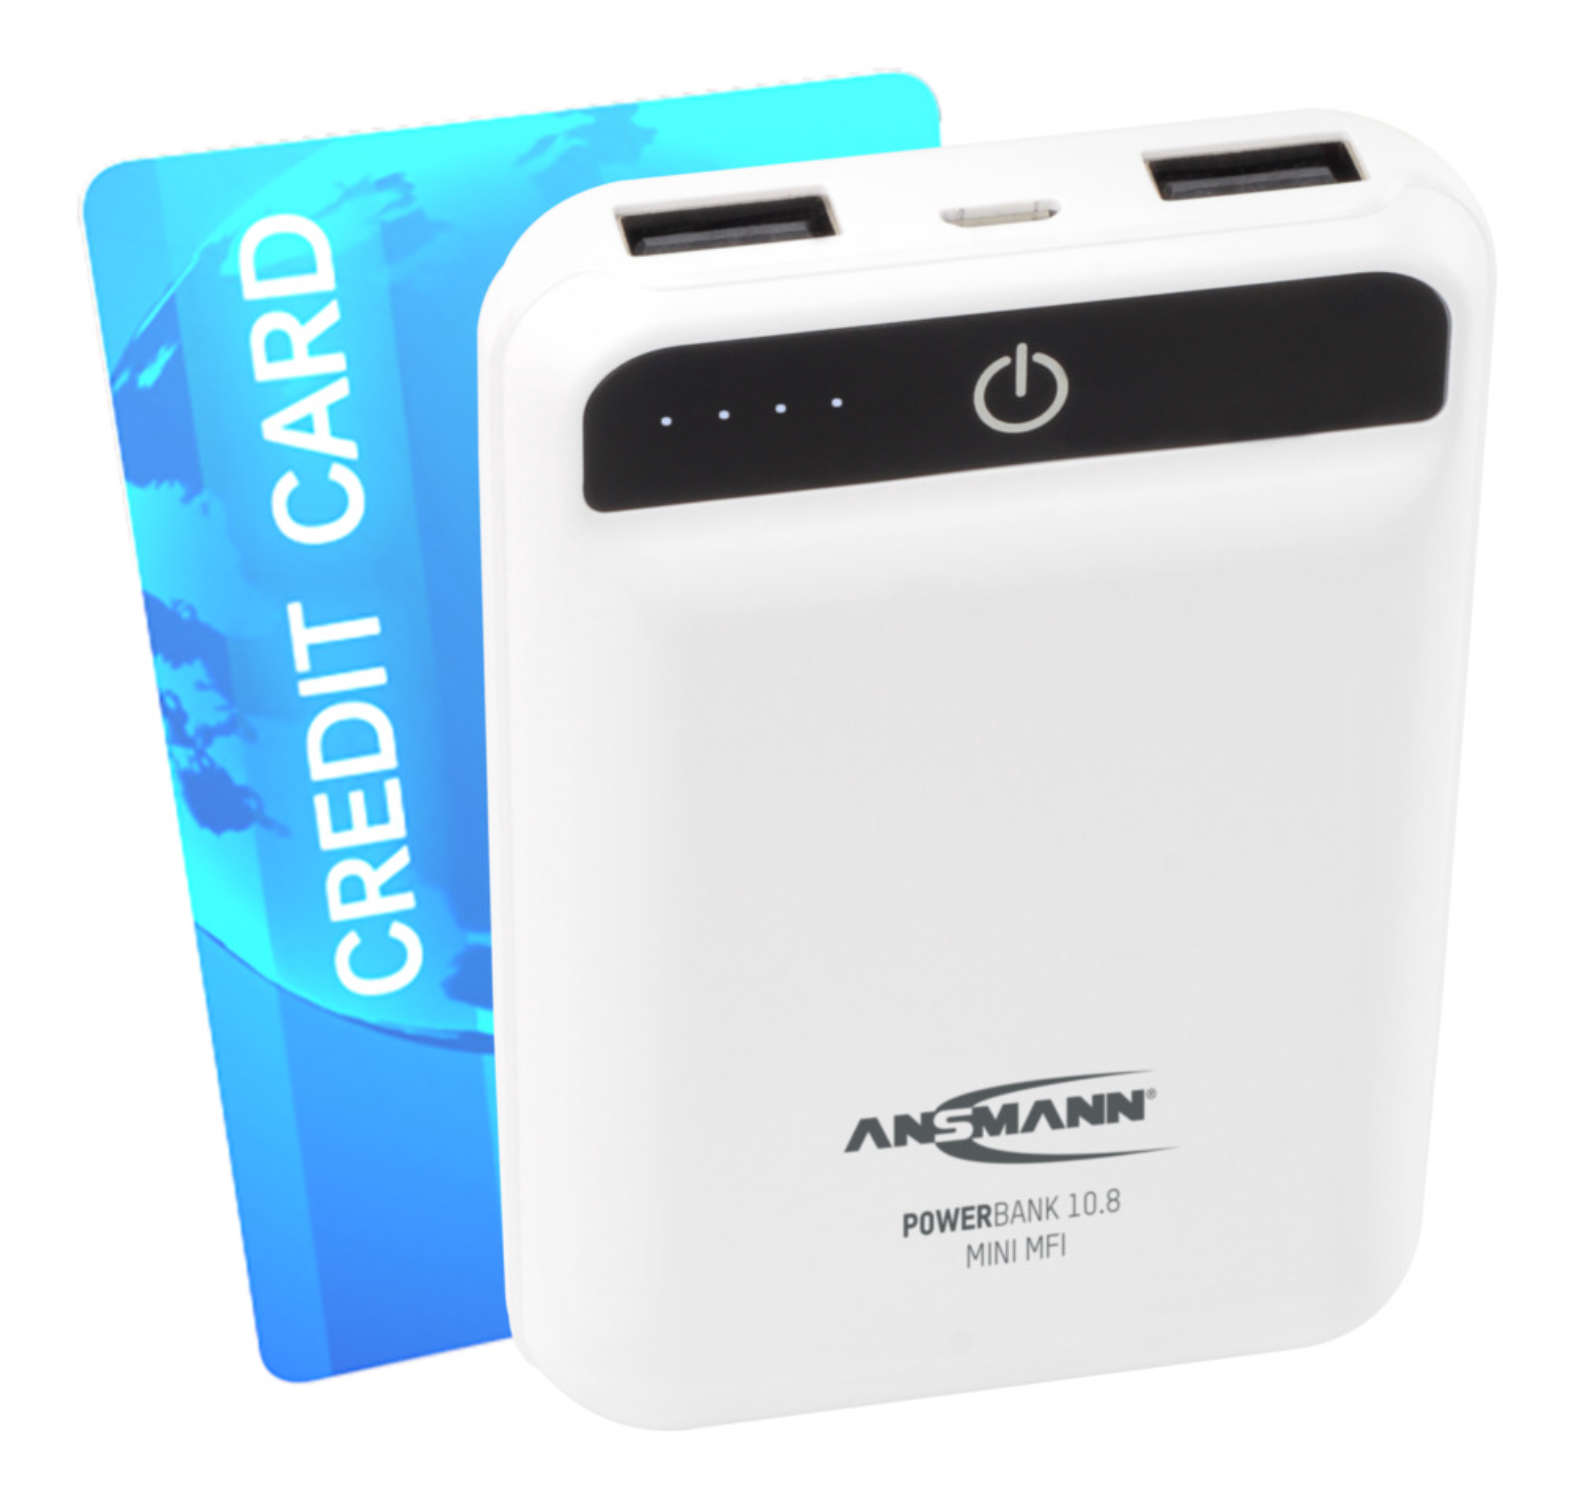 Powerbank 10.8 mini white